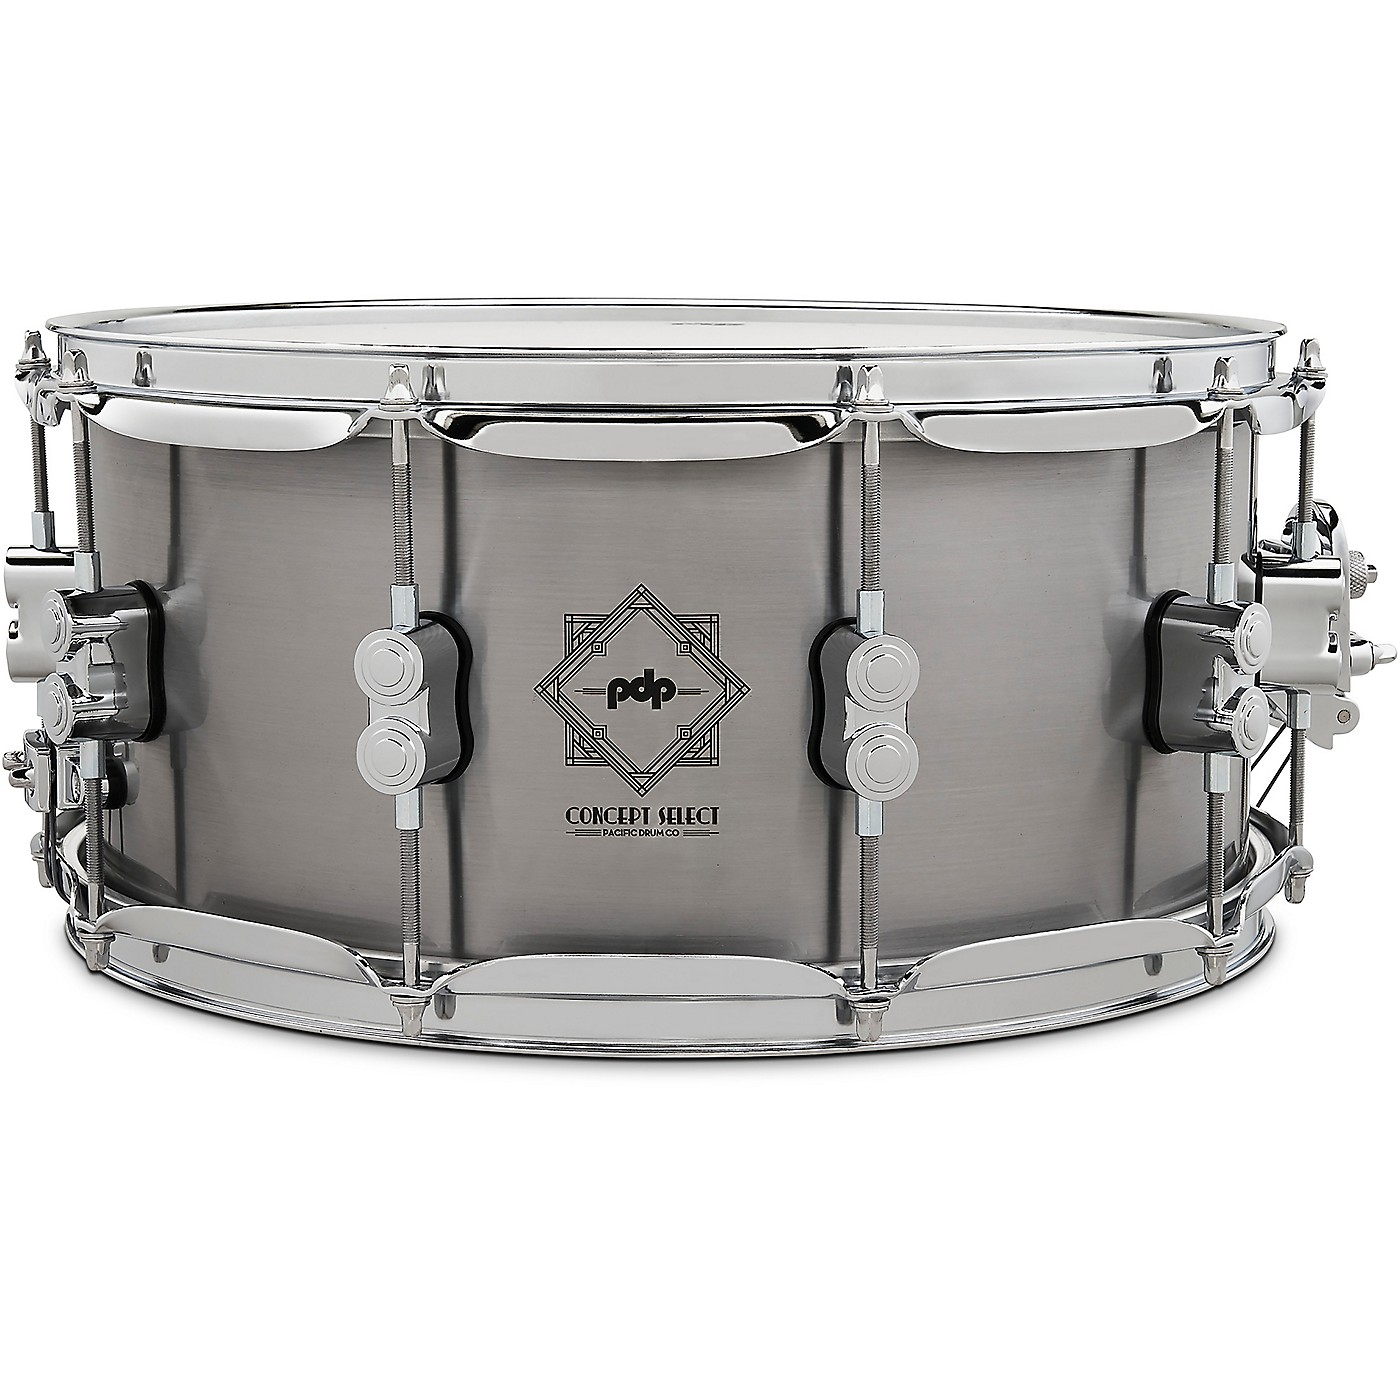 PDP by DW Concept Select Steel Snare Drum thumbnail